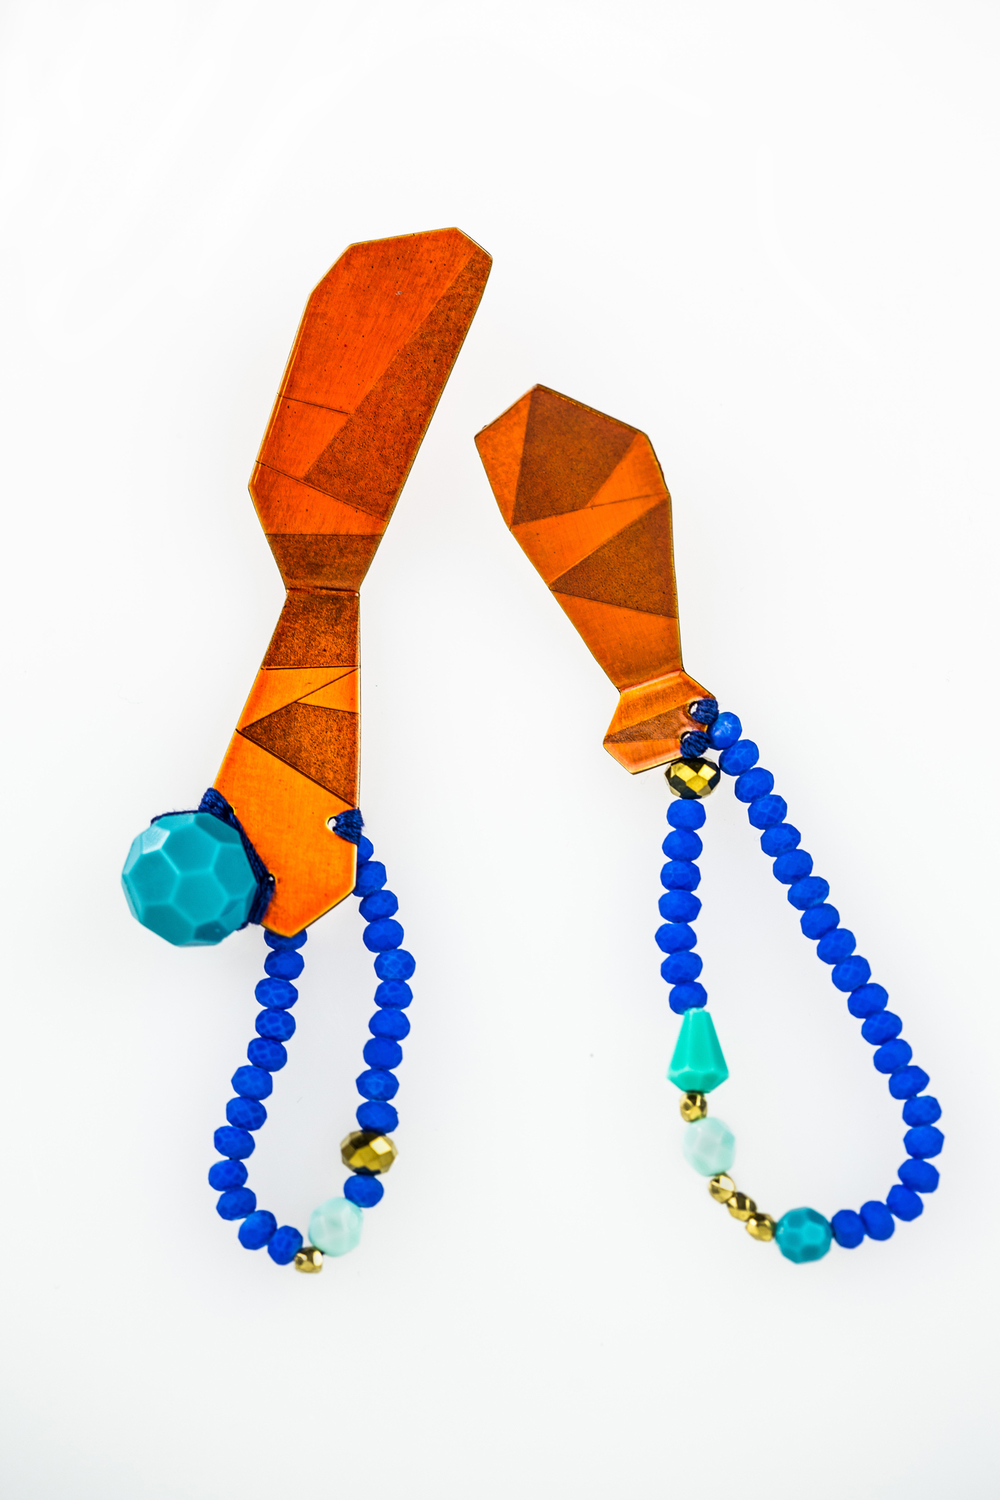 E5 Voegele, Stephanie large orange geometric shape with blue beads.jpg